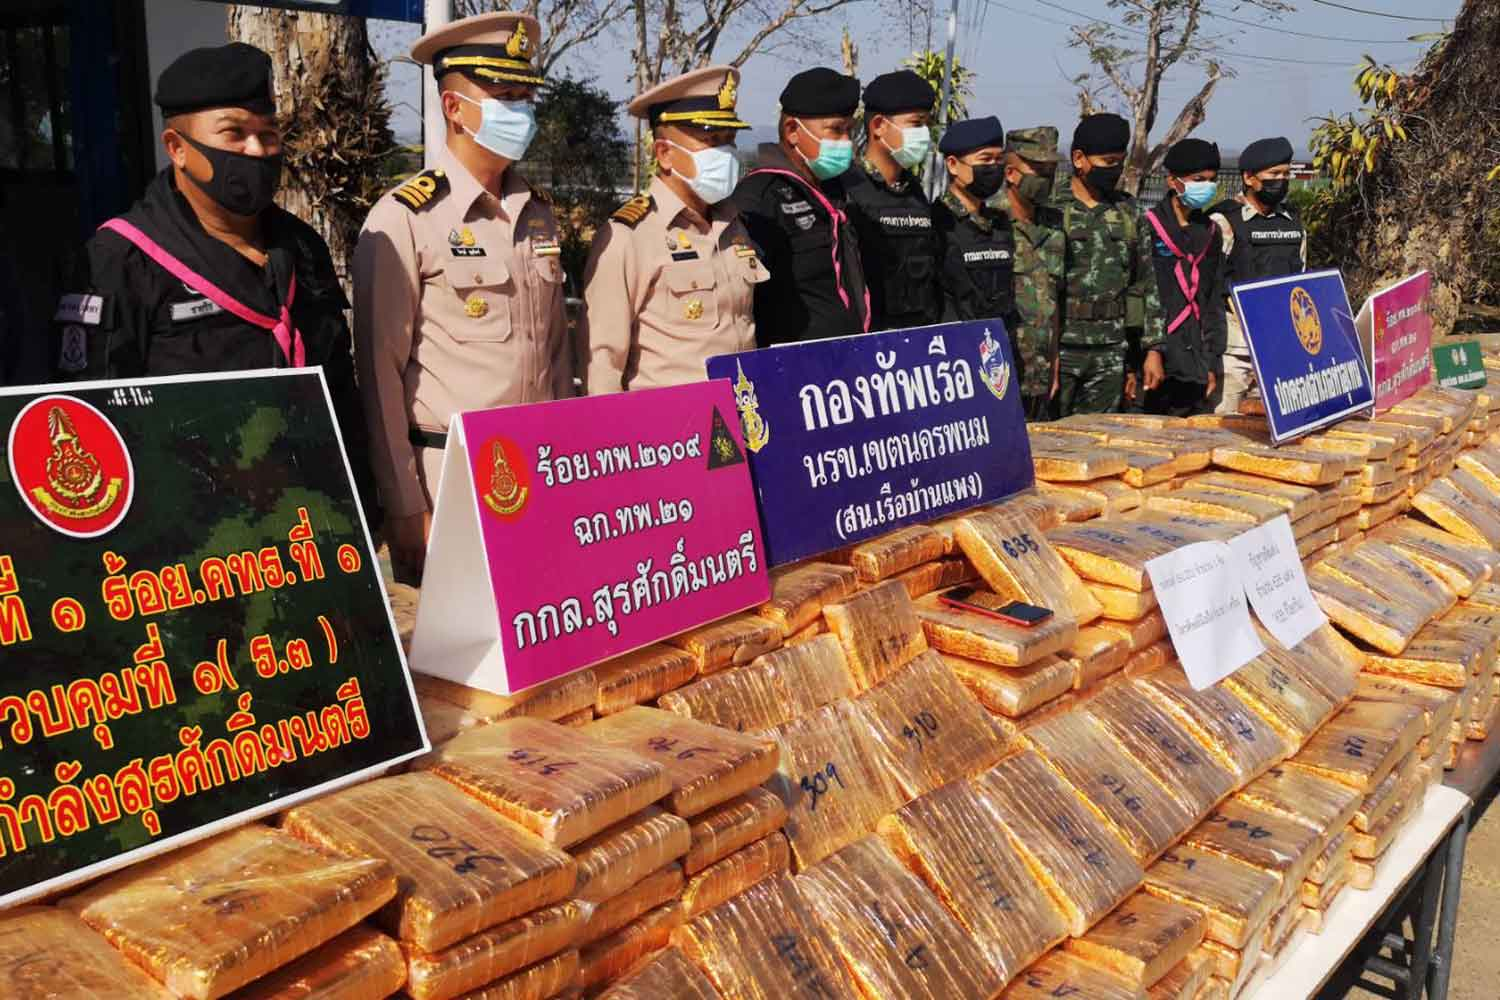 Packages of dried marijuana, 635 kilogrammes in total, on display at the Mekong Riverine Unit offices in Nakhon Phanom's Ban Phaeng district. It was seized from an abandoned  pickup on the Mekong river bank in Tha Uthen district early on Monday morning. (Photo: Pattanapong Sripiachai)